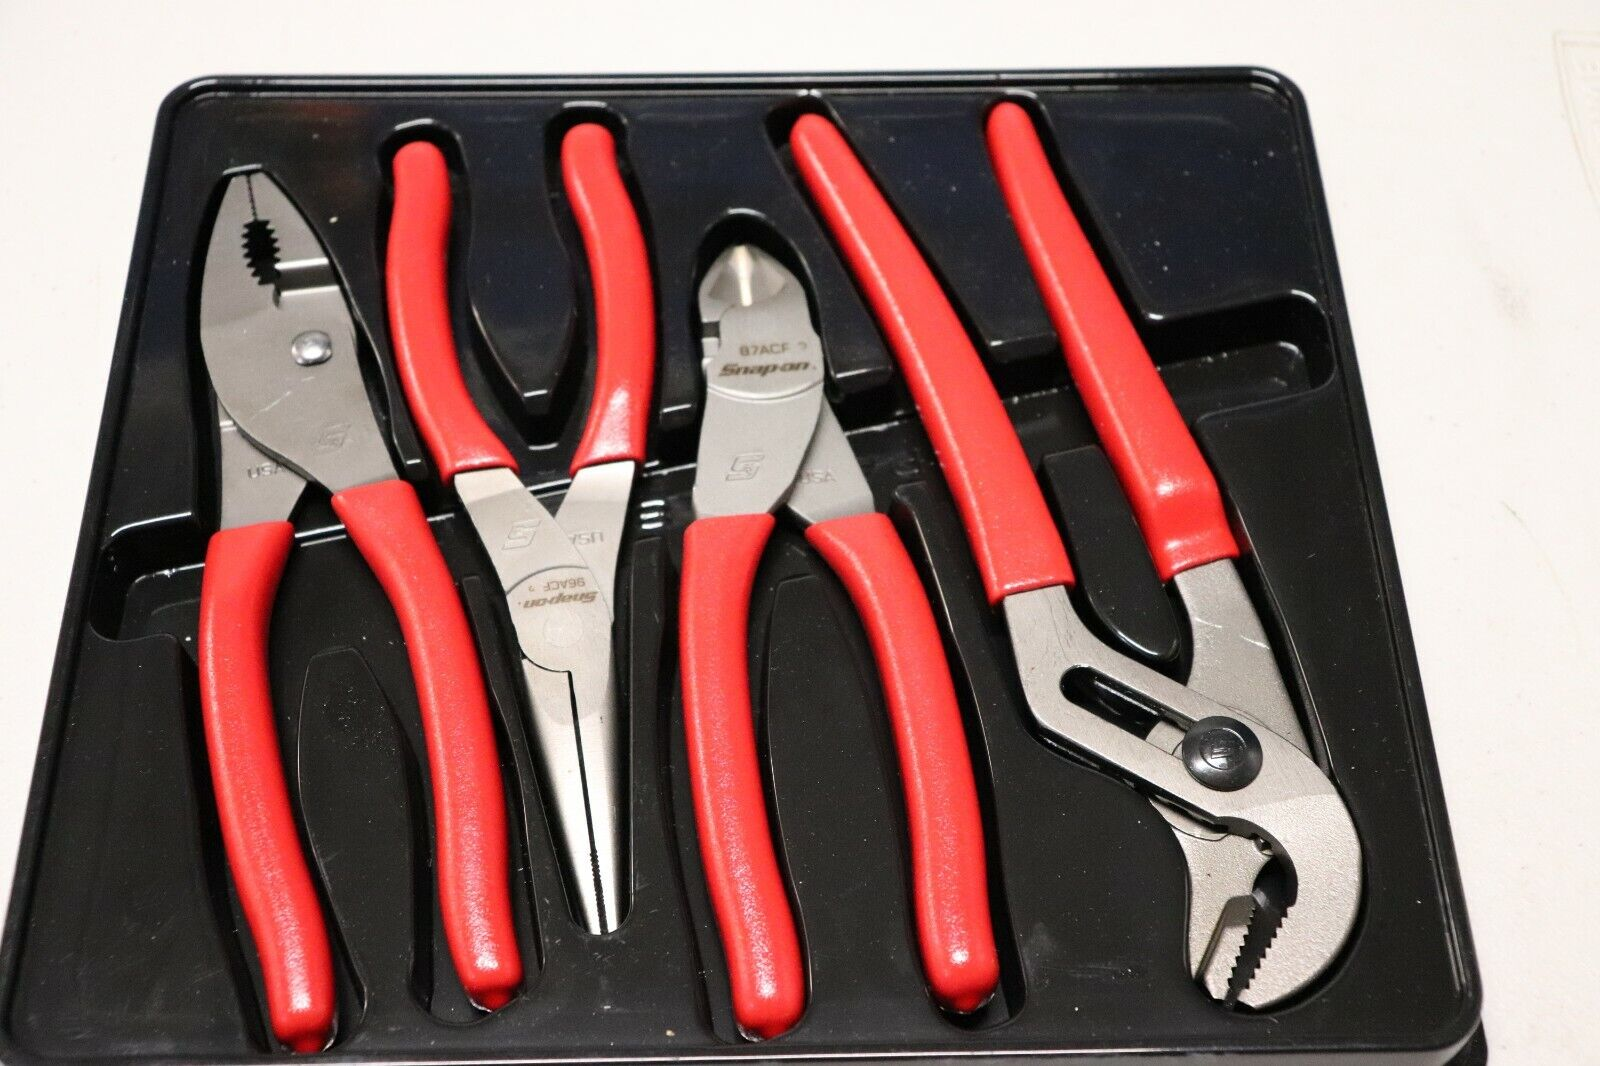 Snap-On 4 pc Pliers/ Cutters Set (Red) - Snapon PL400B